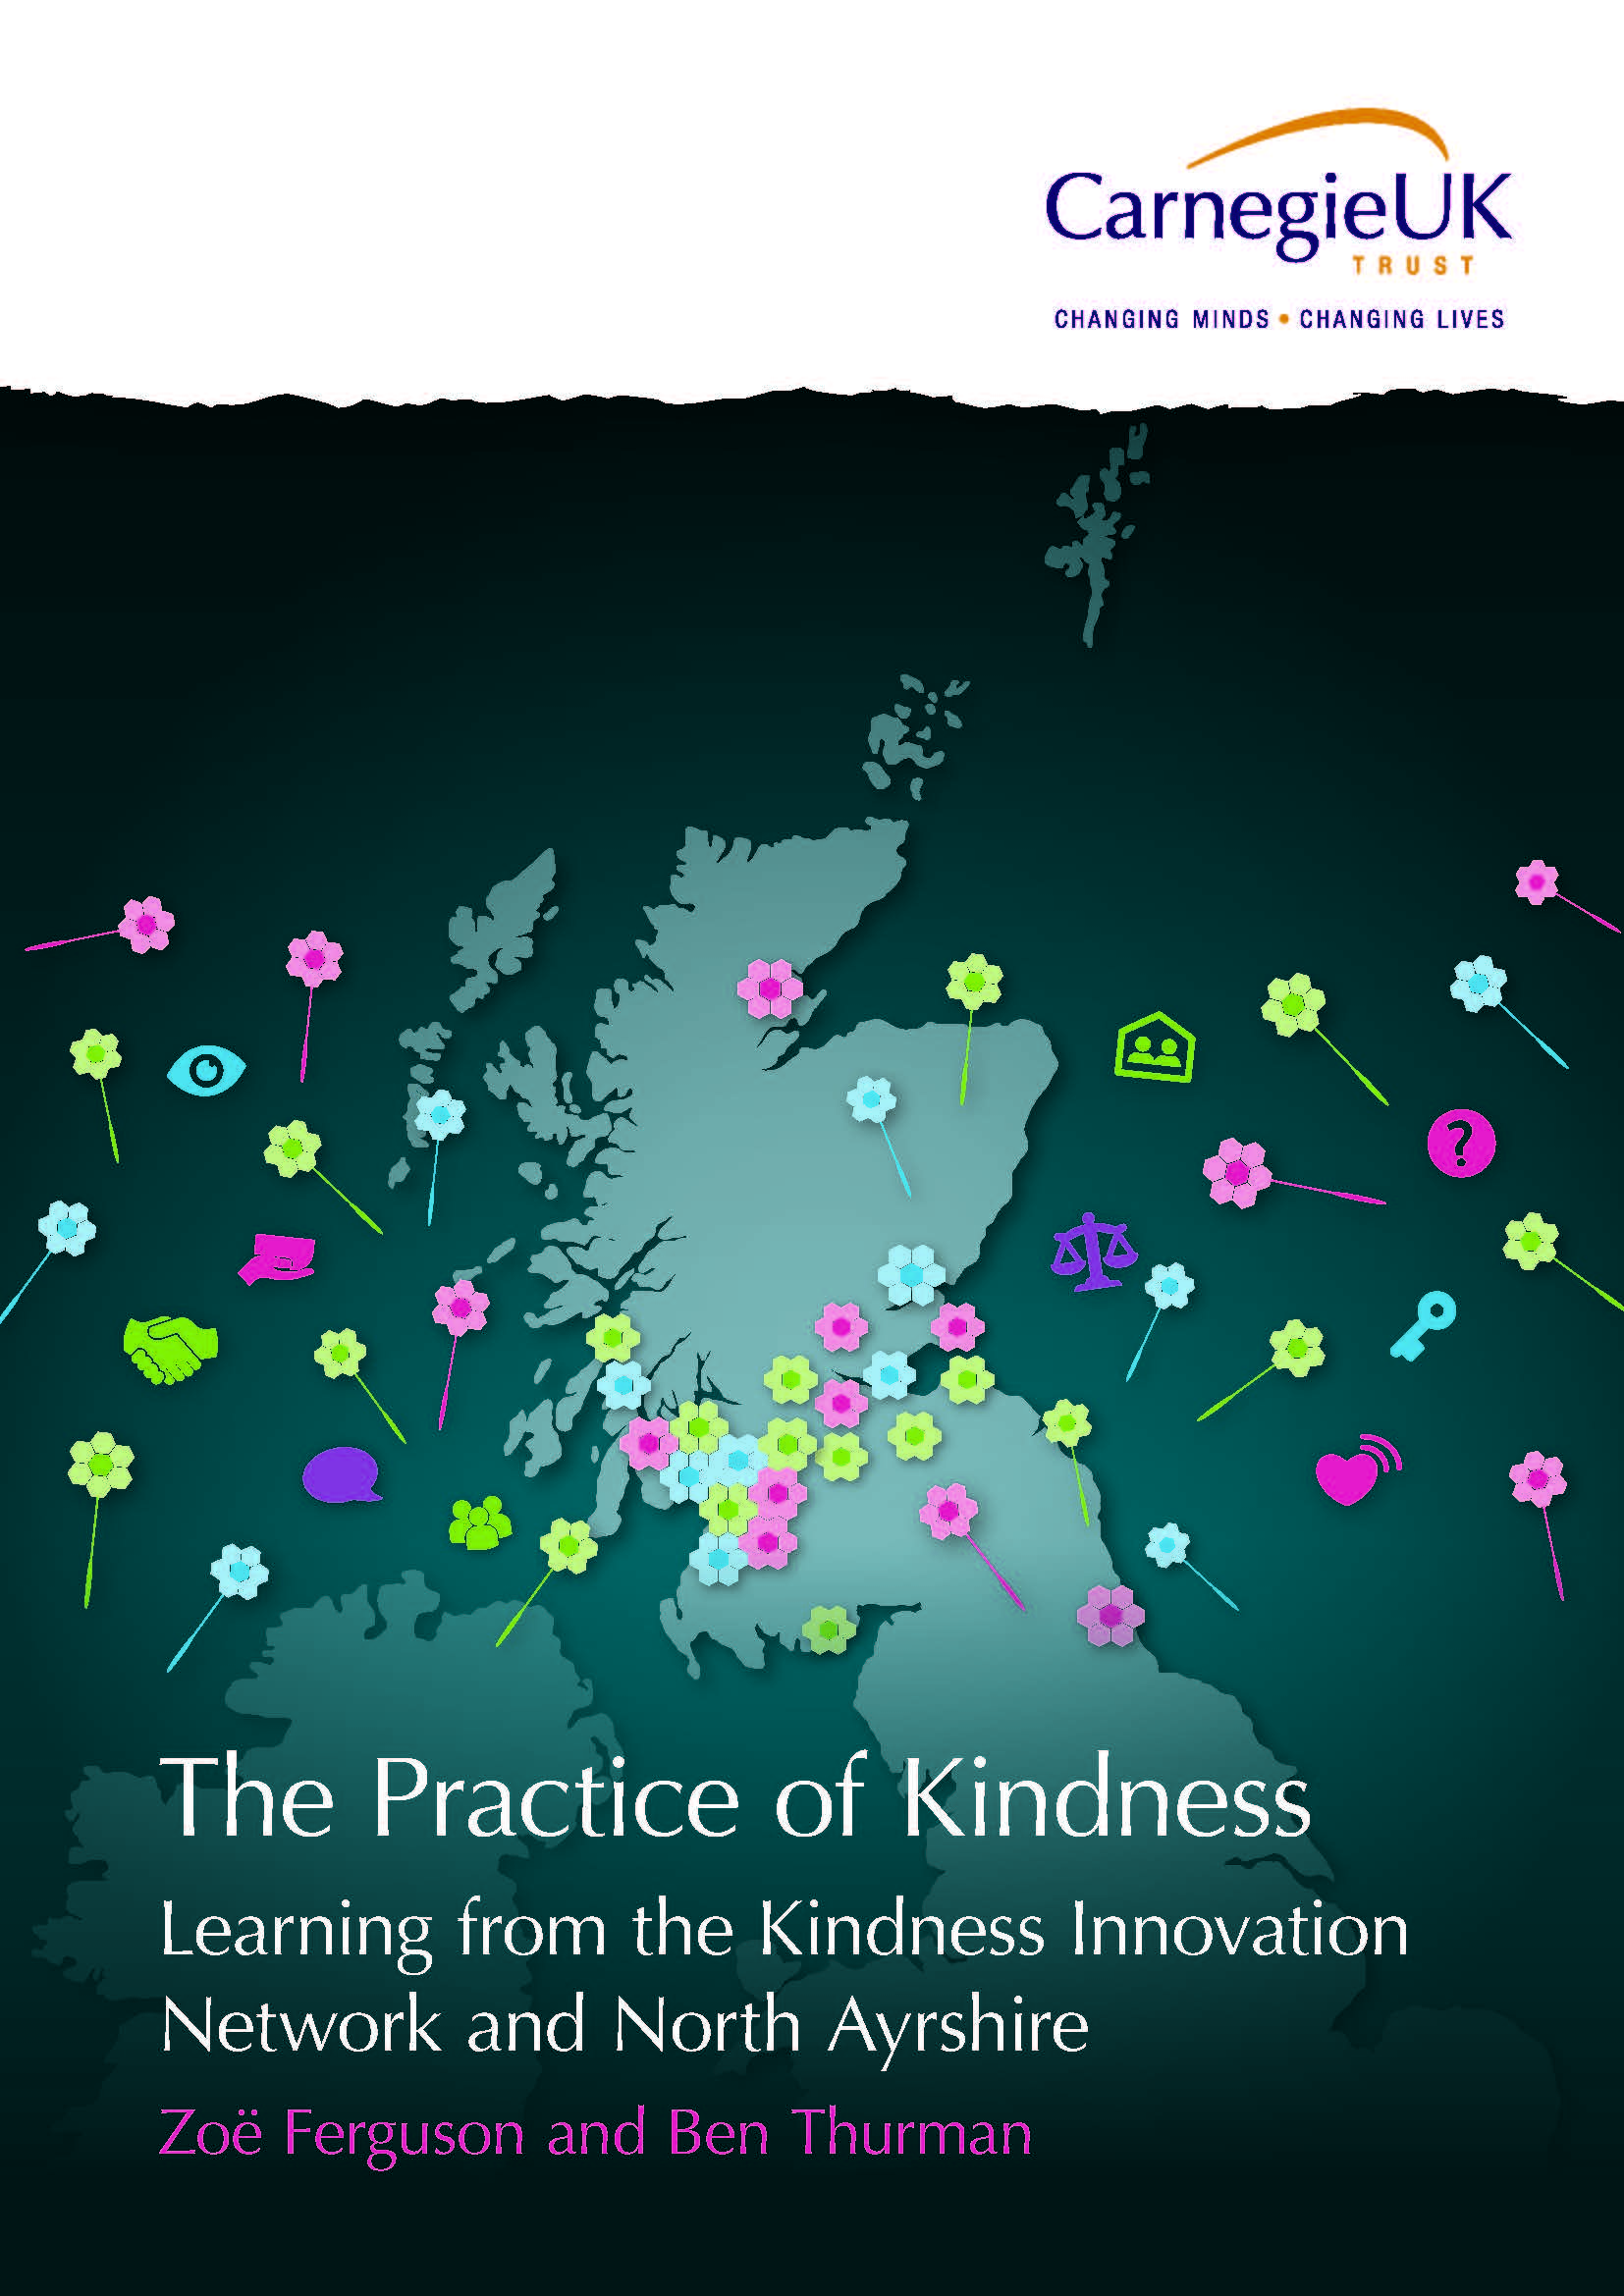 The Practice of Kindness: Learning from KIN and North Ayrshire